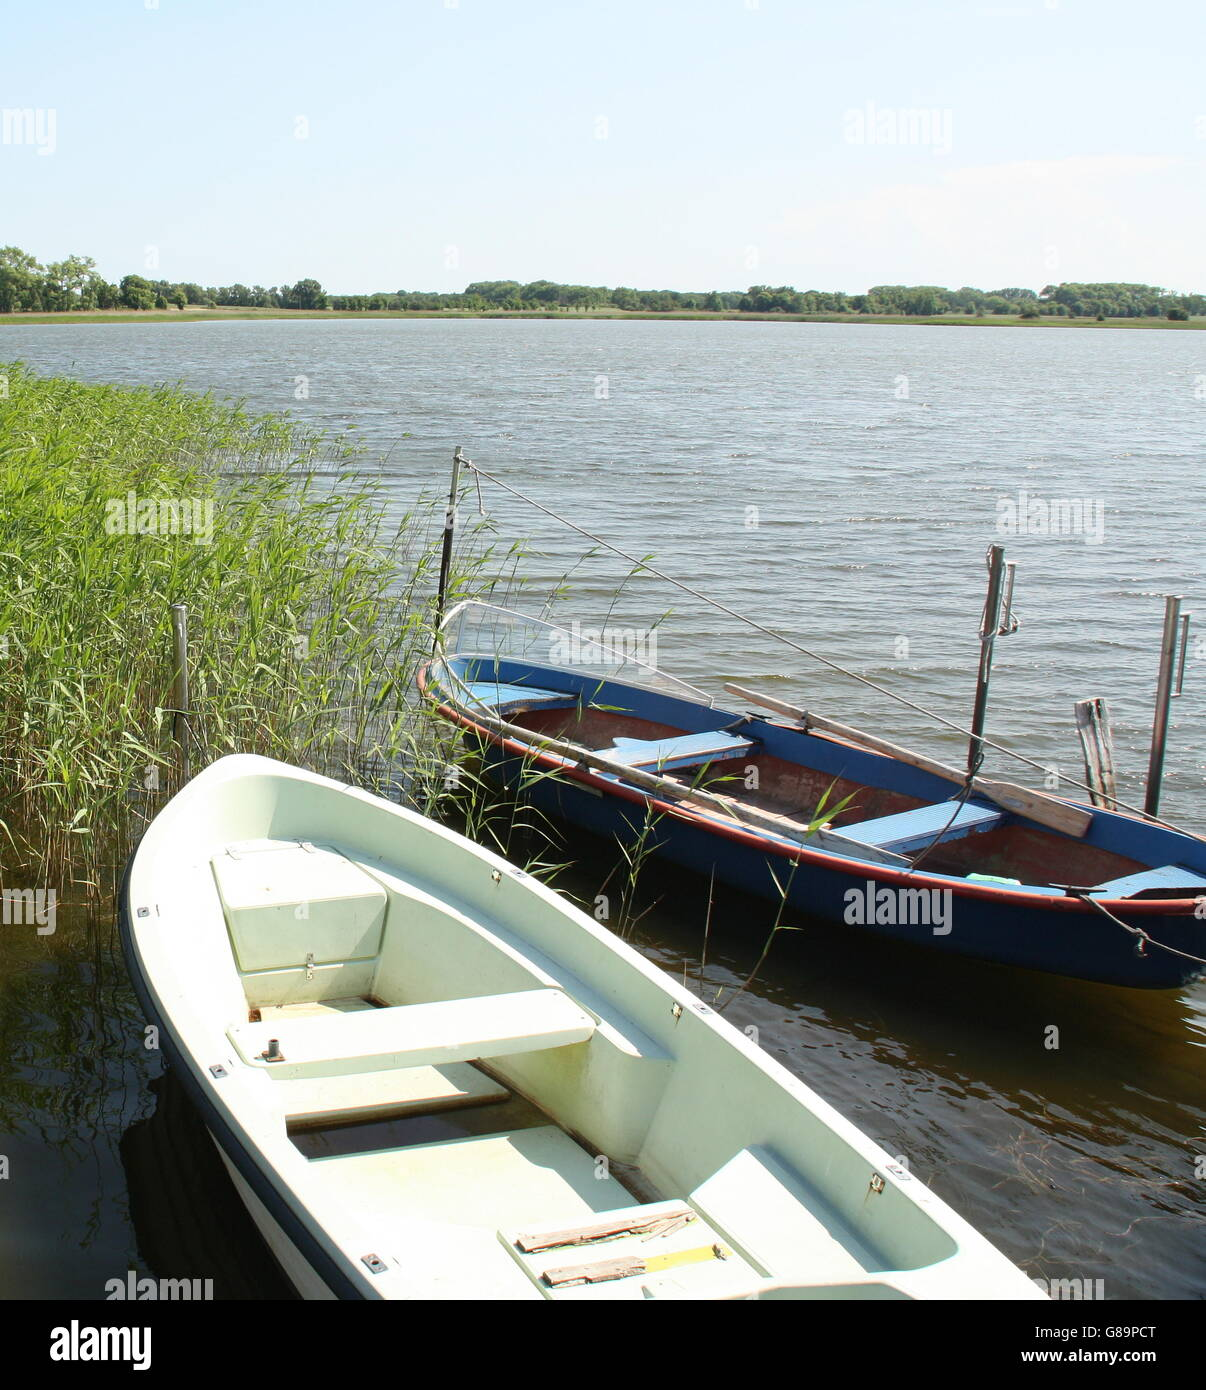 Boats in the bay of Nature reserve Neuendorfer Wiek on the island Rügen.Germany - Stock Image